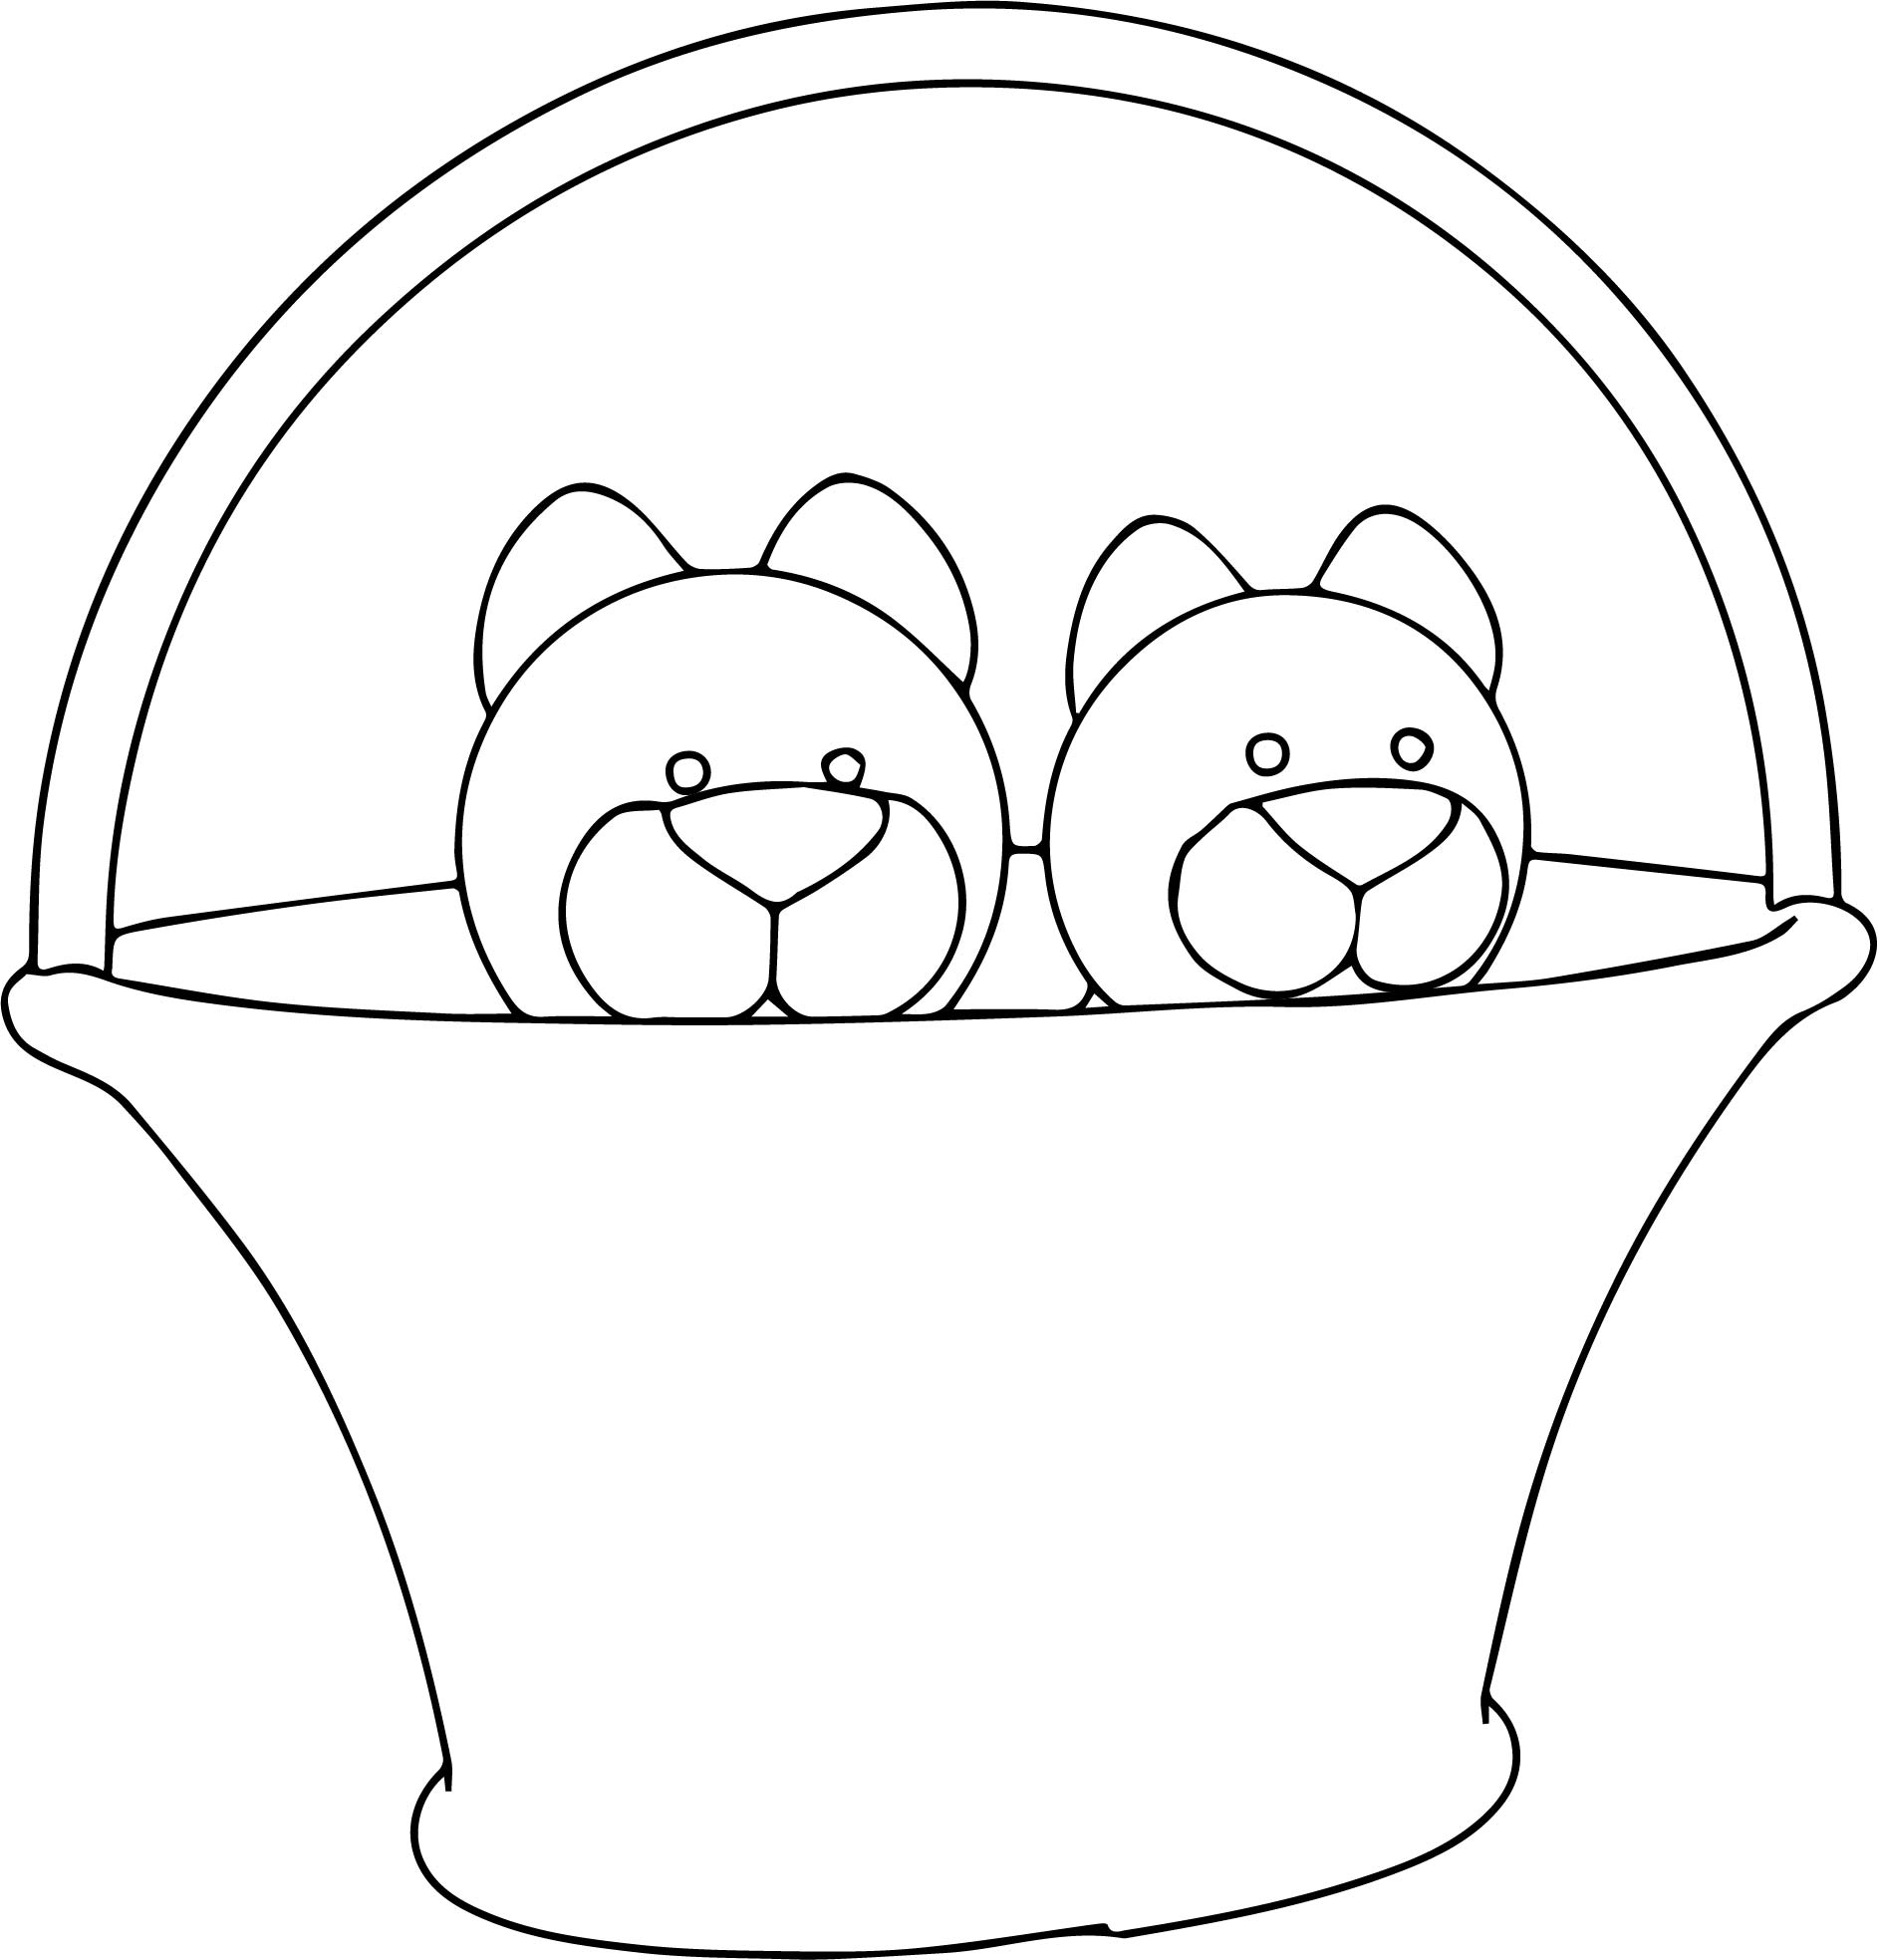 In Basket Cats Coloring Page | Wecoloringpage